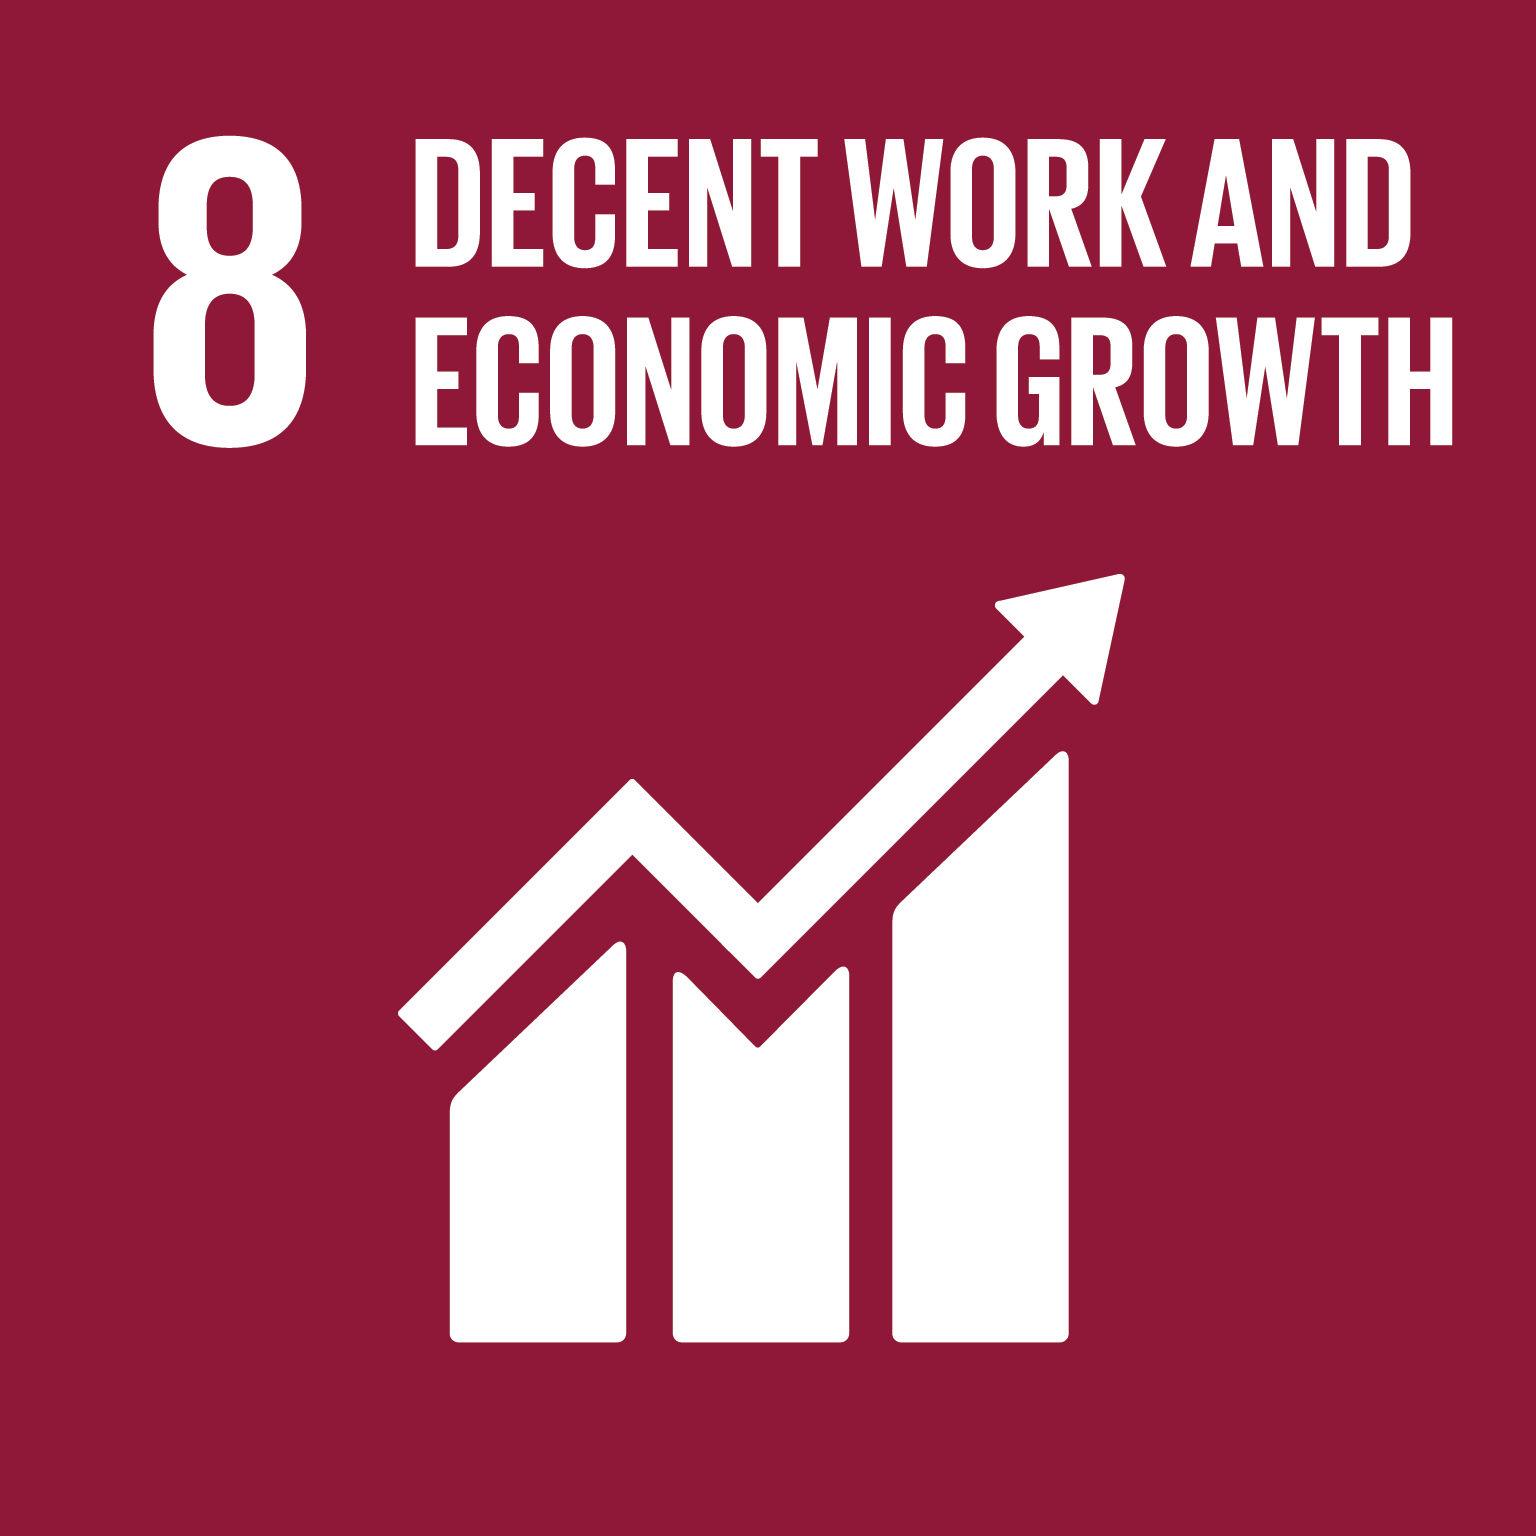 Icona Decent work and economic growth con grafico in crescita